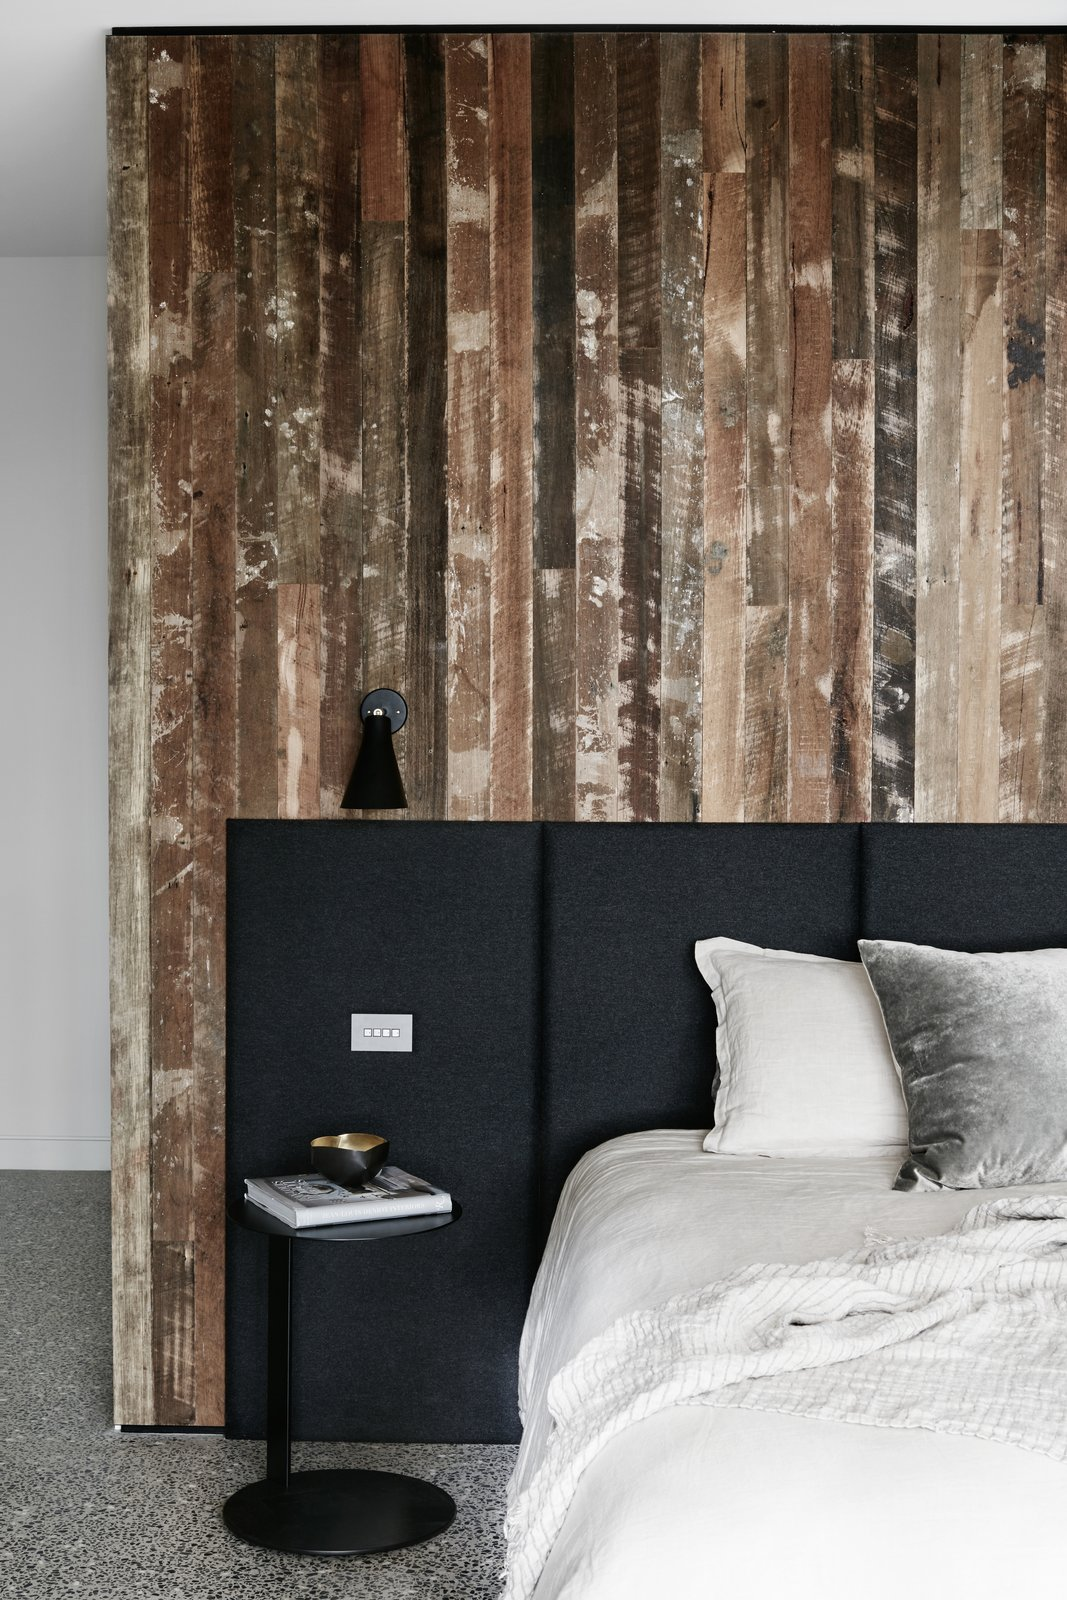 Bedroom, Bed, Wall Lighting, and Concrete Floor  Photo 7 of 9 in Recycled Wood Stars in an Ogle-Worthy Renovation in Australia